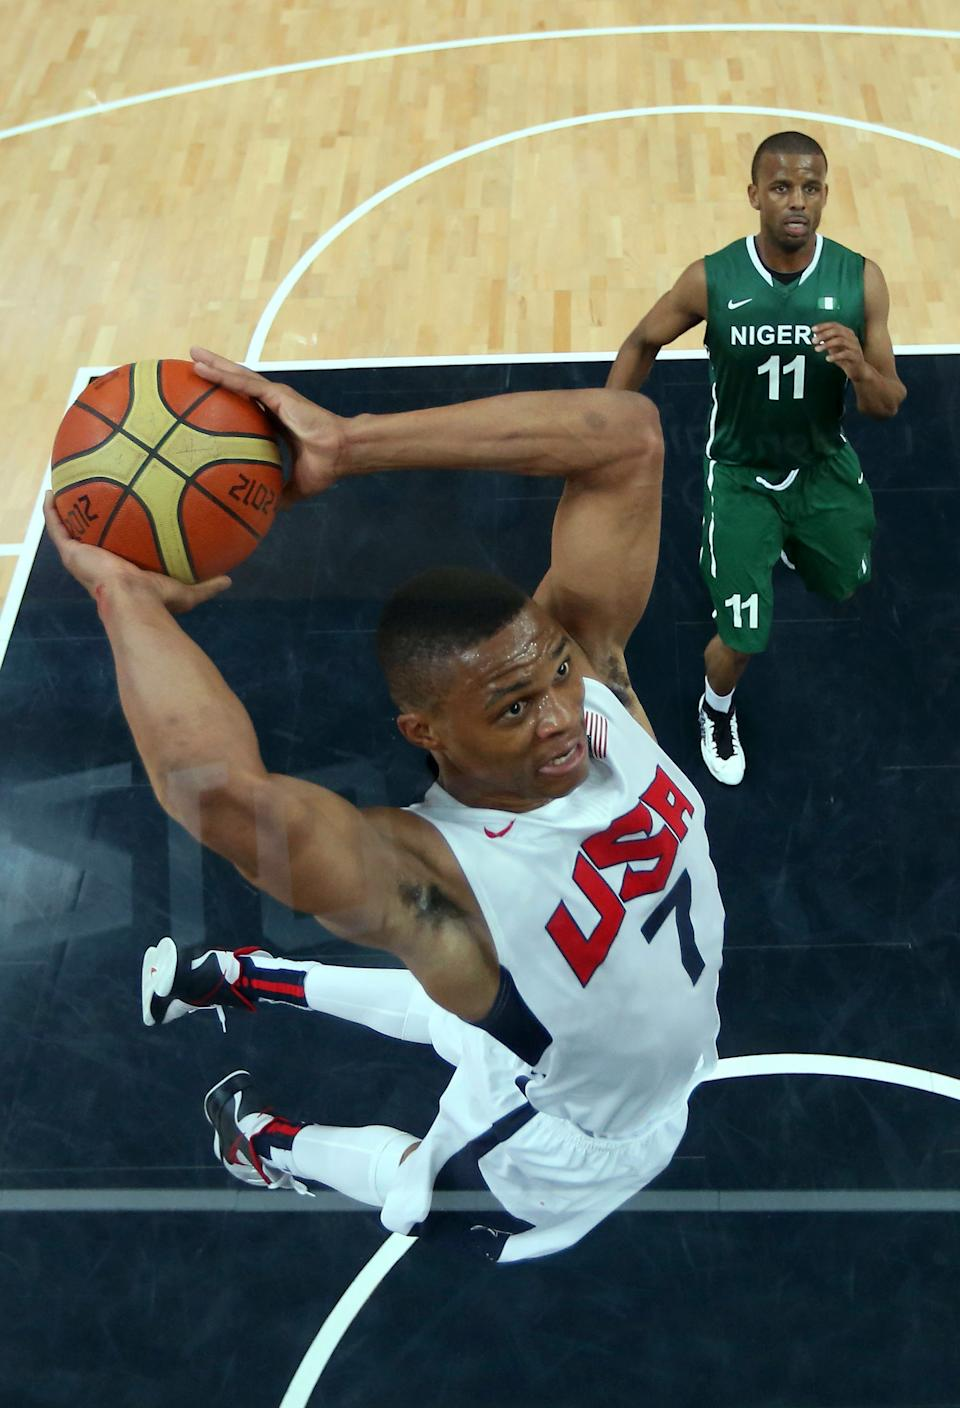 Russell Westbrook (7) of the United States shoots against Richard Oruche (11) of Nigeria during their men's basketball preliminary round match at the 2012 Summer Olympics on Thursday, Aug. 2, 2012, in London. (AP Photo/Christian Petersen, Pool)